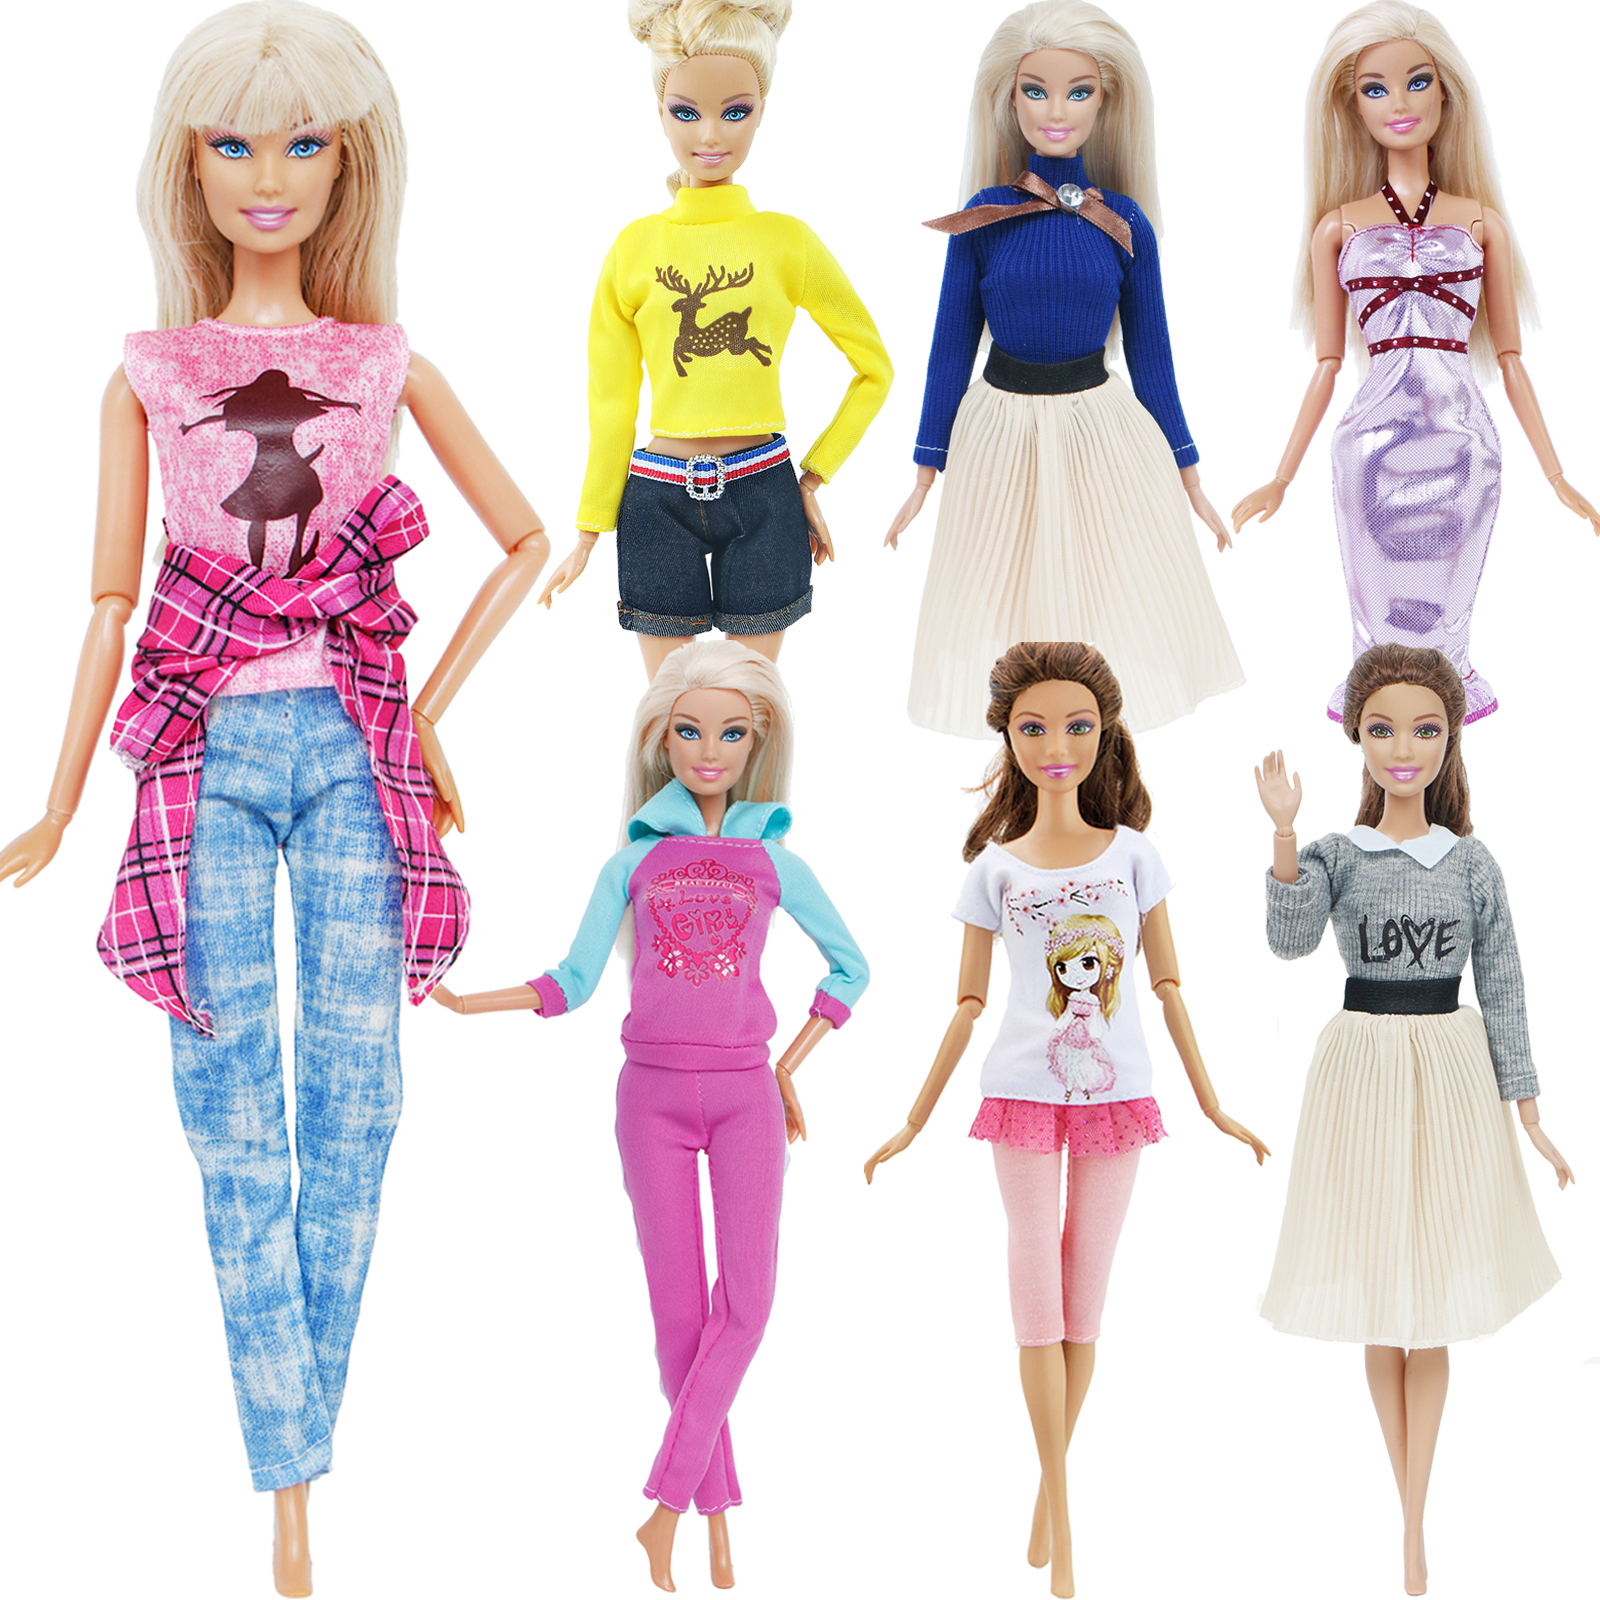 1x Doll Clothes Fashion Dress Daily Wear Skirt Party Gown Blouse Pants For Barbie Doll Accessories Lovely Girl Kid Toy